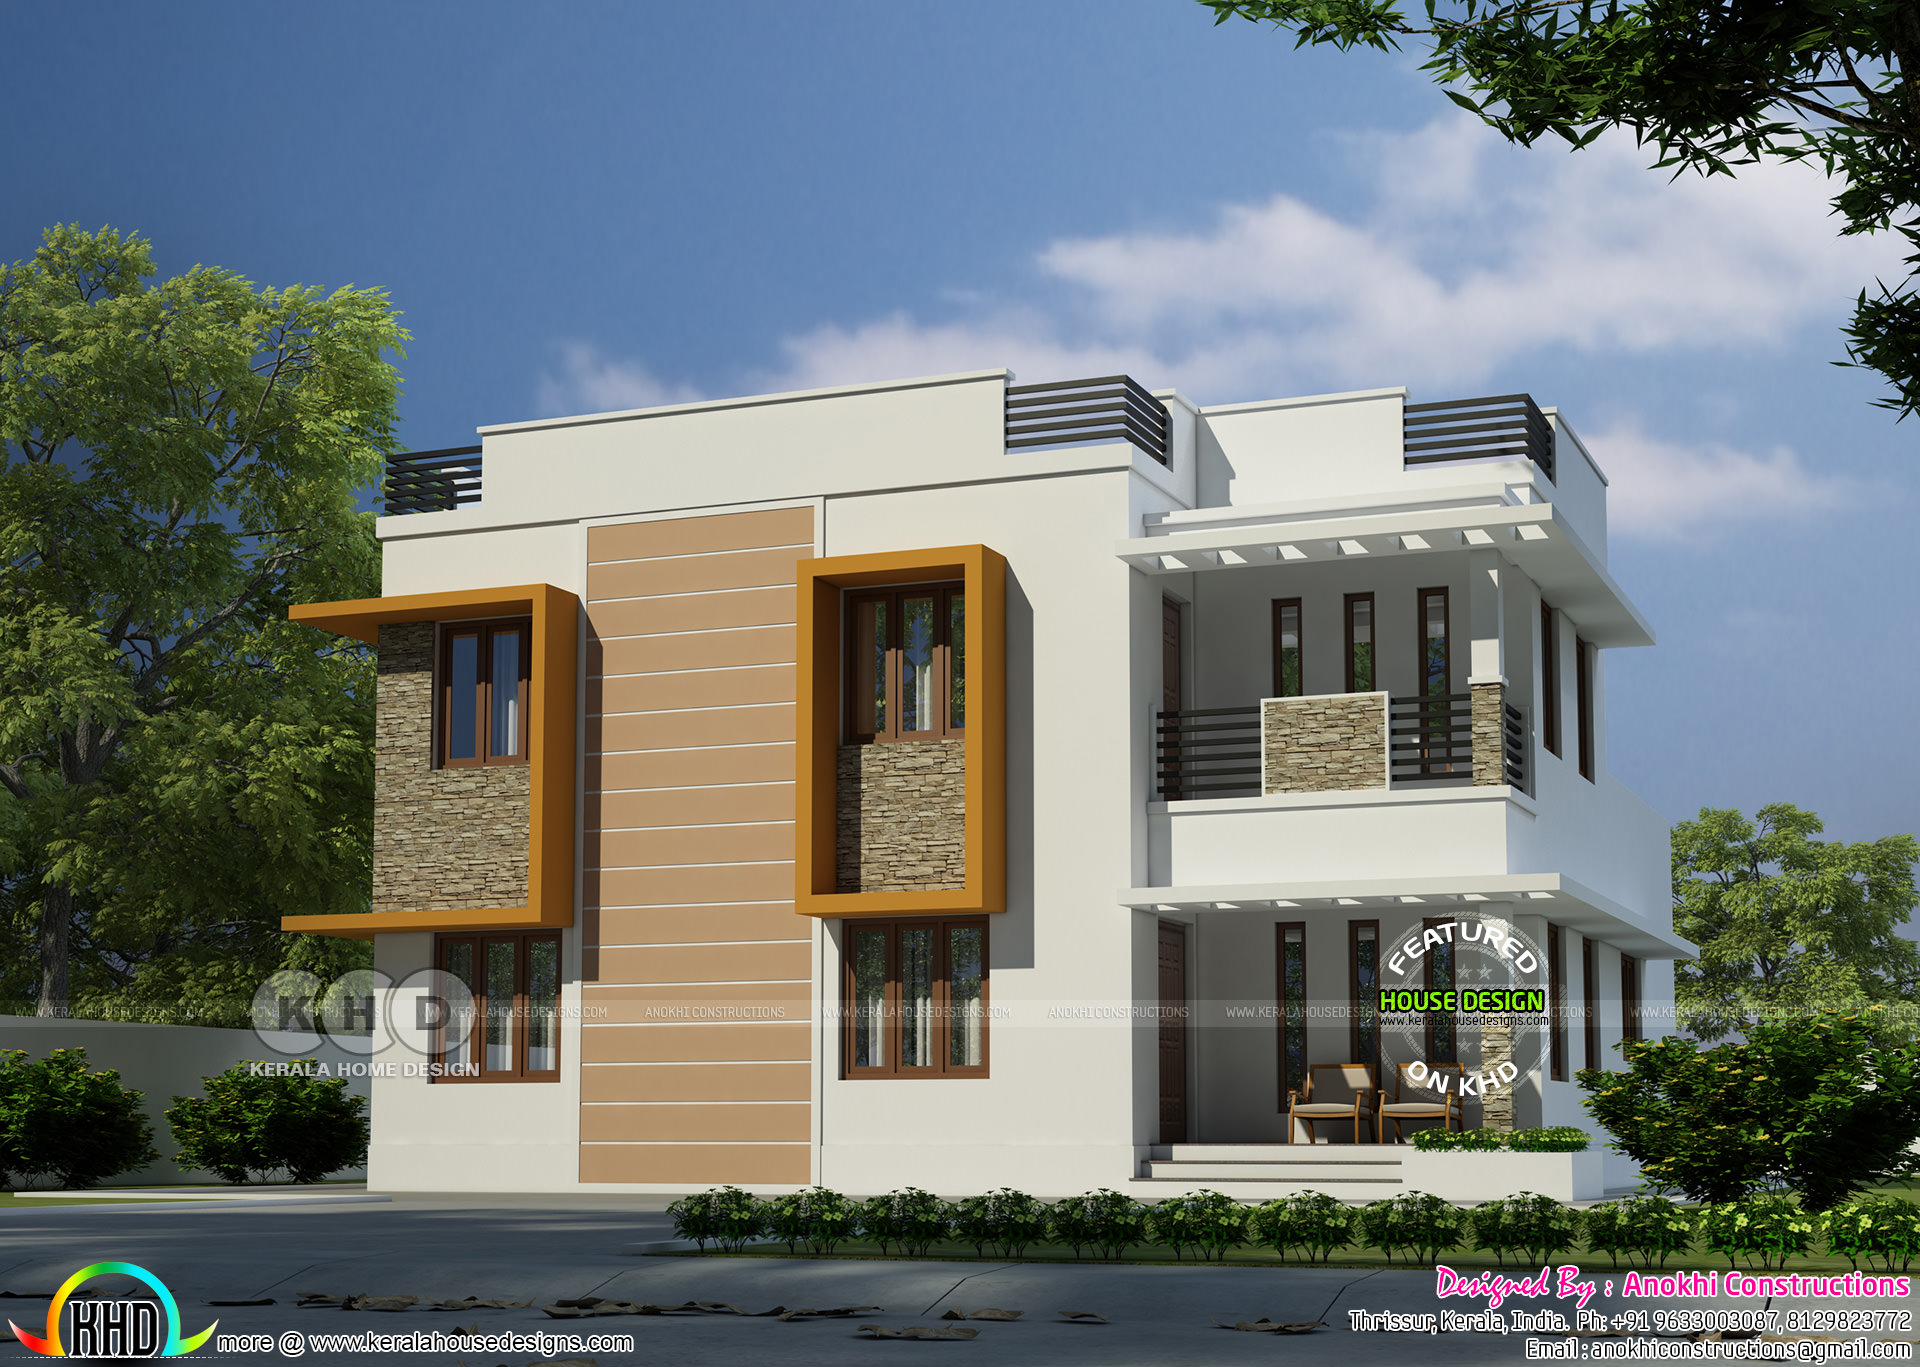 32 5 lakhs cost estimated modern home kerala home for House design and estimate cost